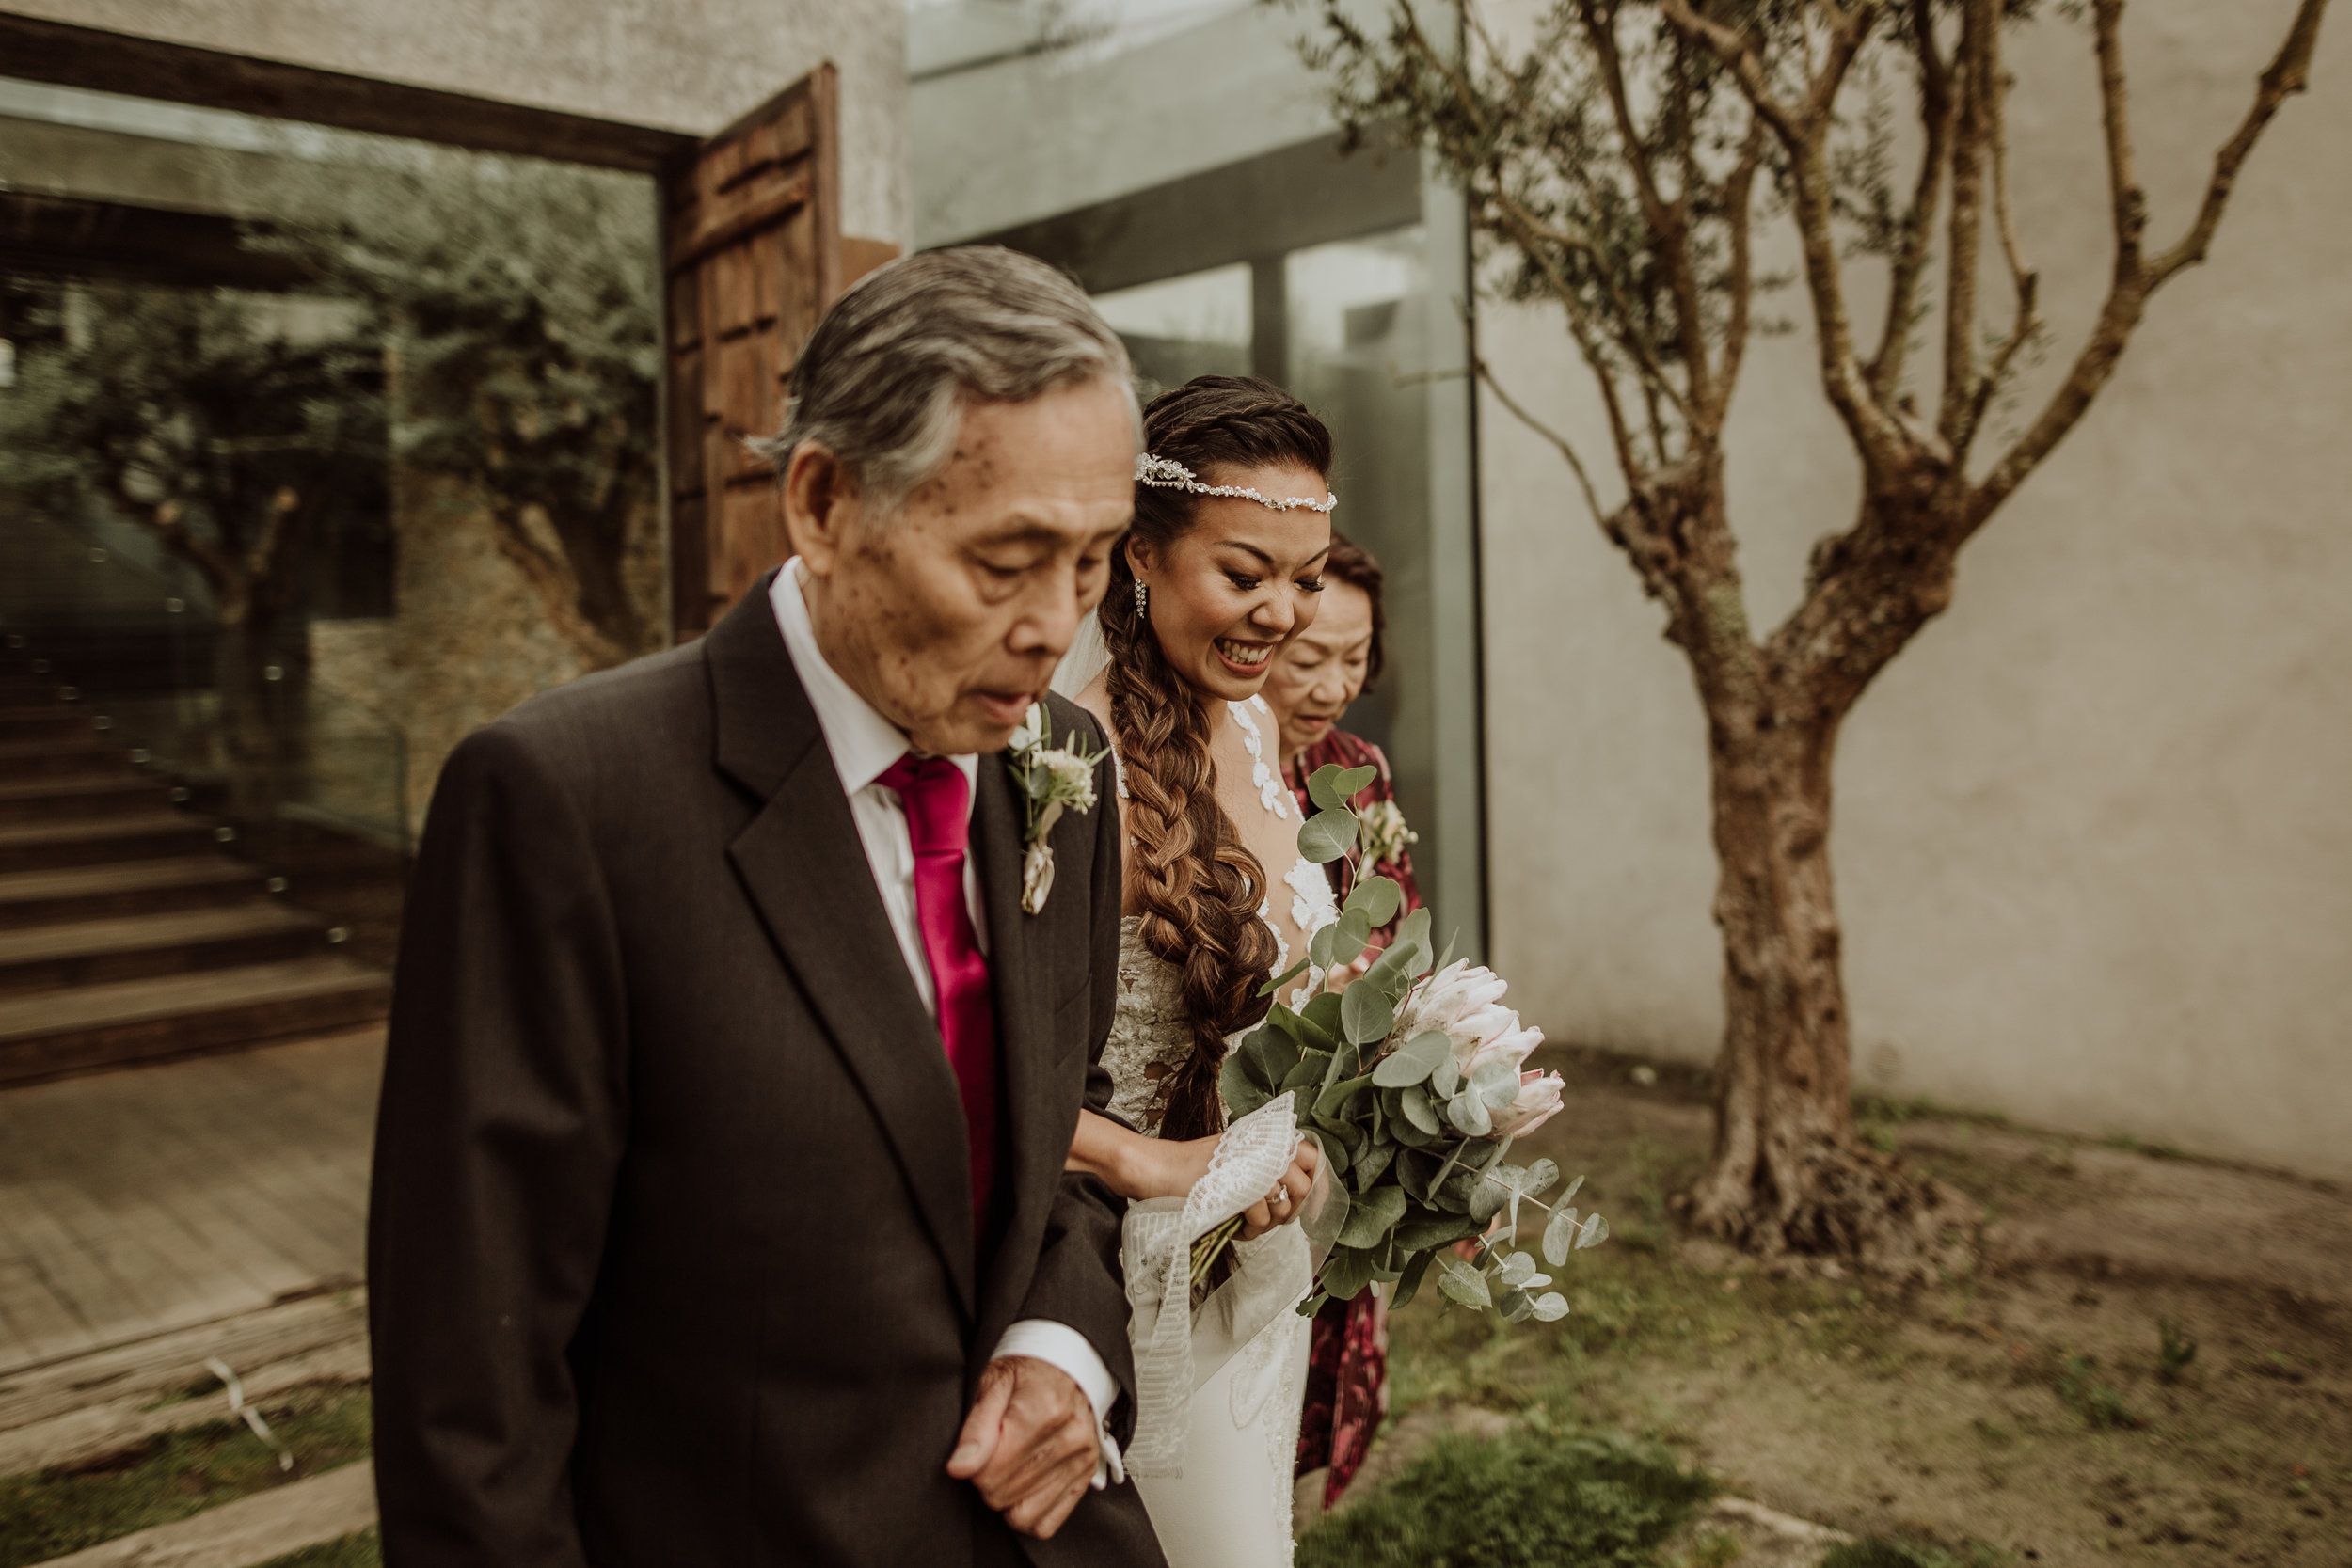 Y&M_612_15_September_2018WEDDING_DAY.jpg